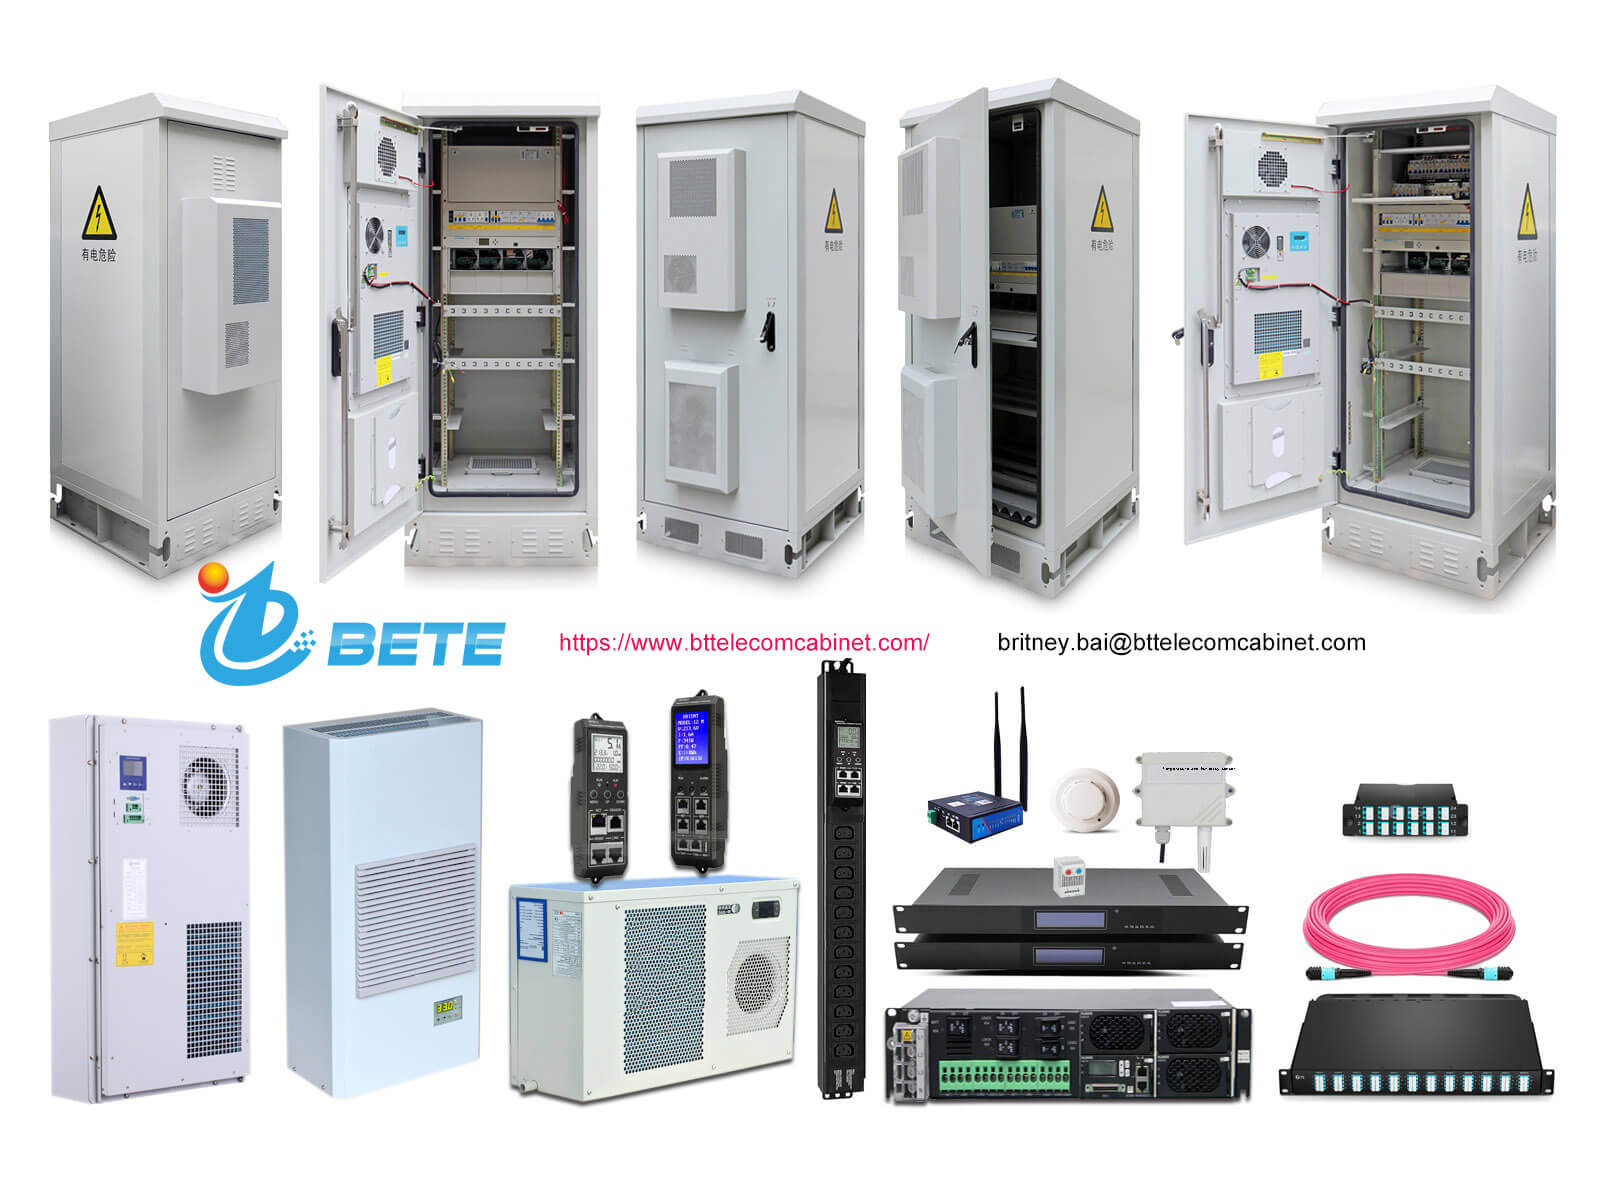 Application and characteristics of outdoor communication cabinets